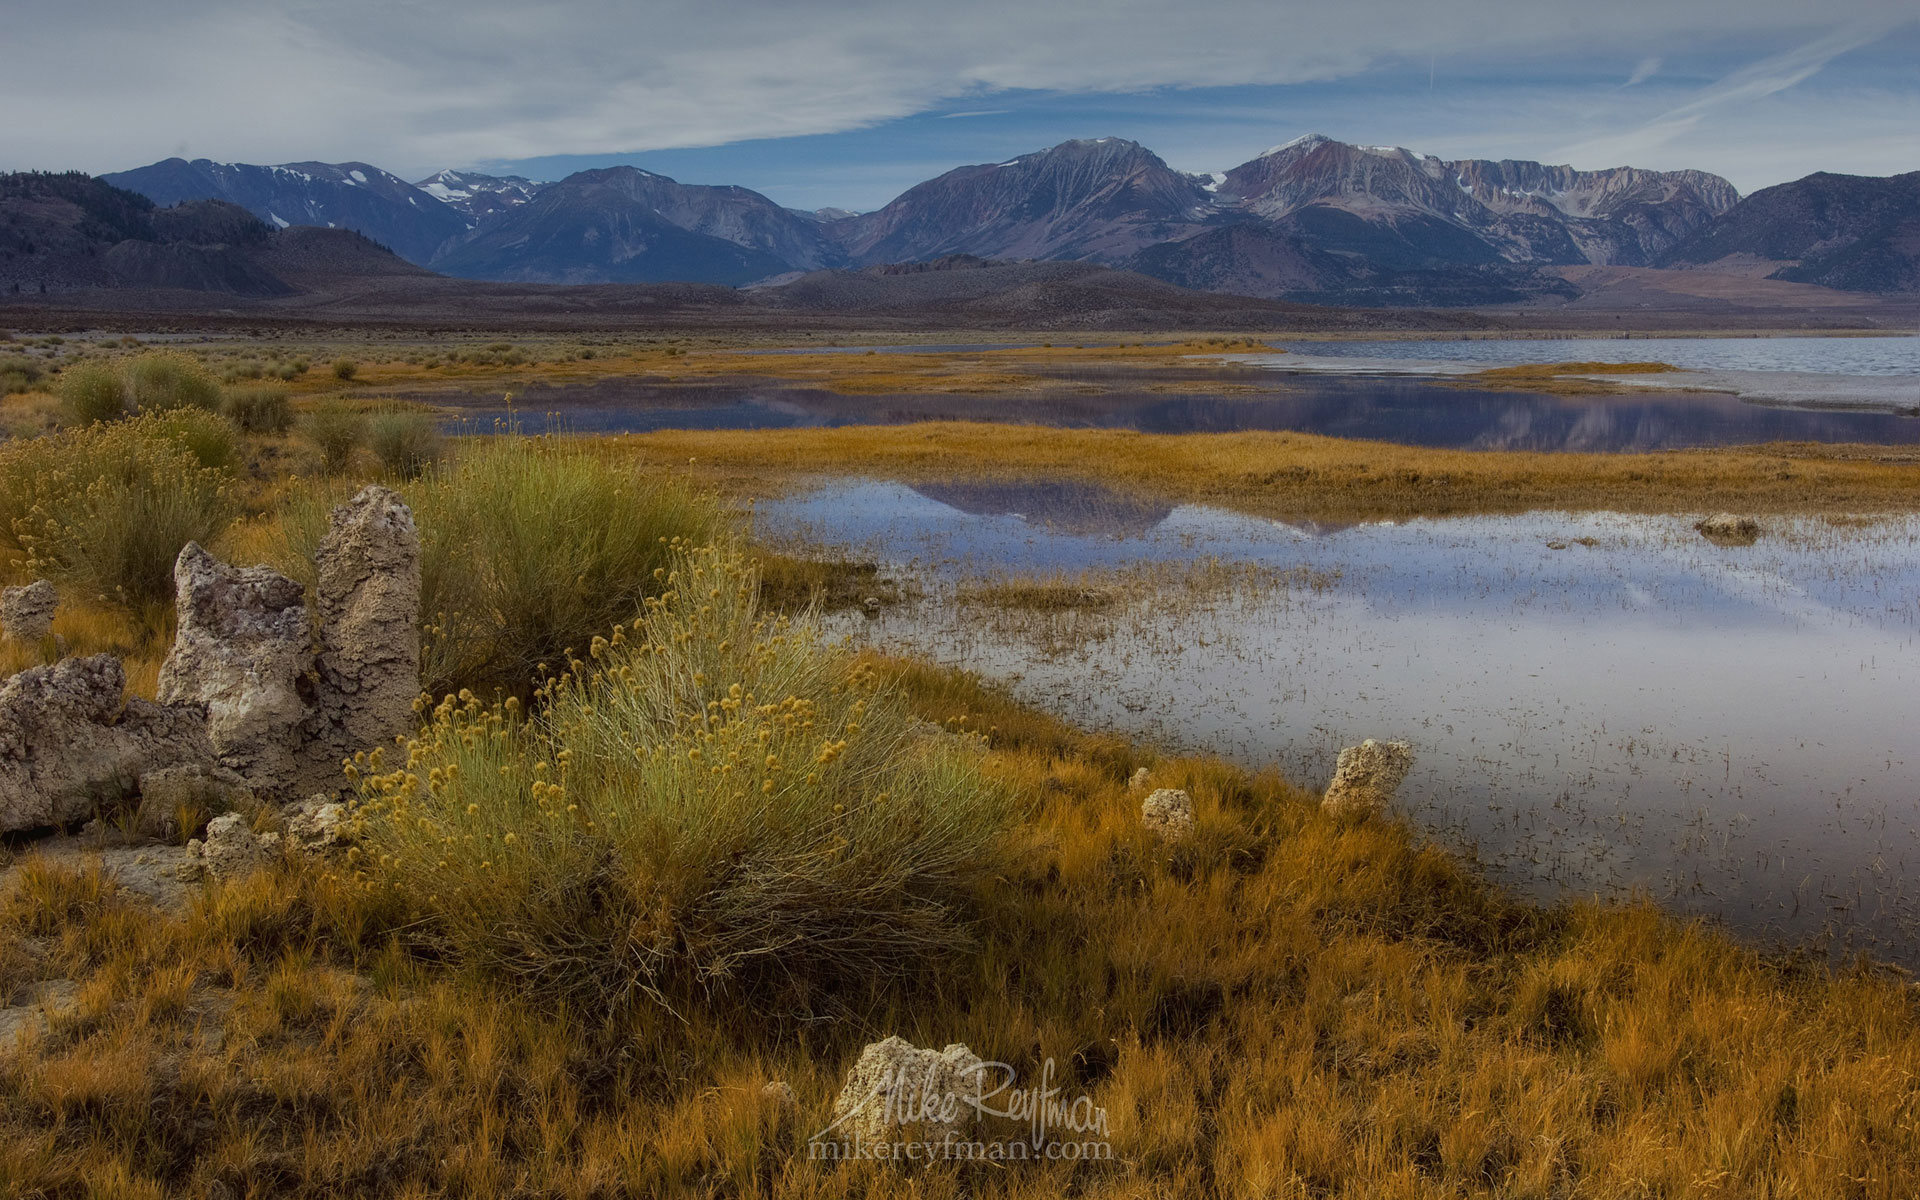 Mono Lake, Tufa State Natural Reserve, Eastern Sierra, California, USA ML1-MRMRO2580 - Mono Lake Tufa State Natural Reserve, Eastern Sierra, California - Mike Reyfman Photography